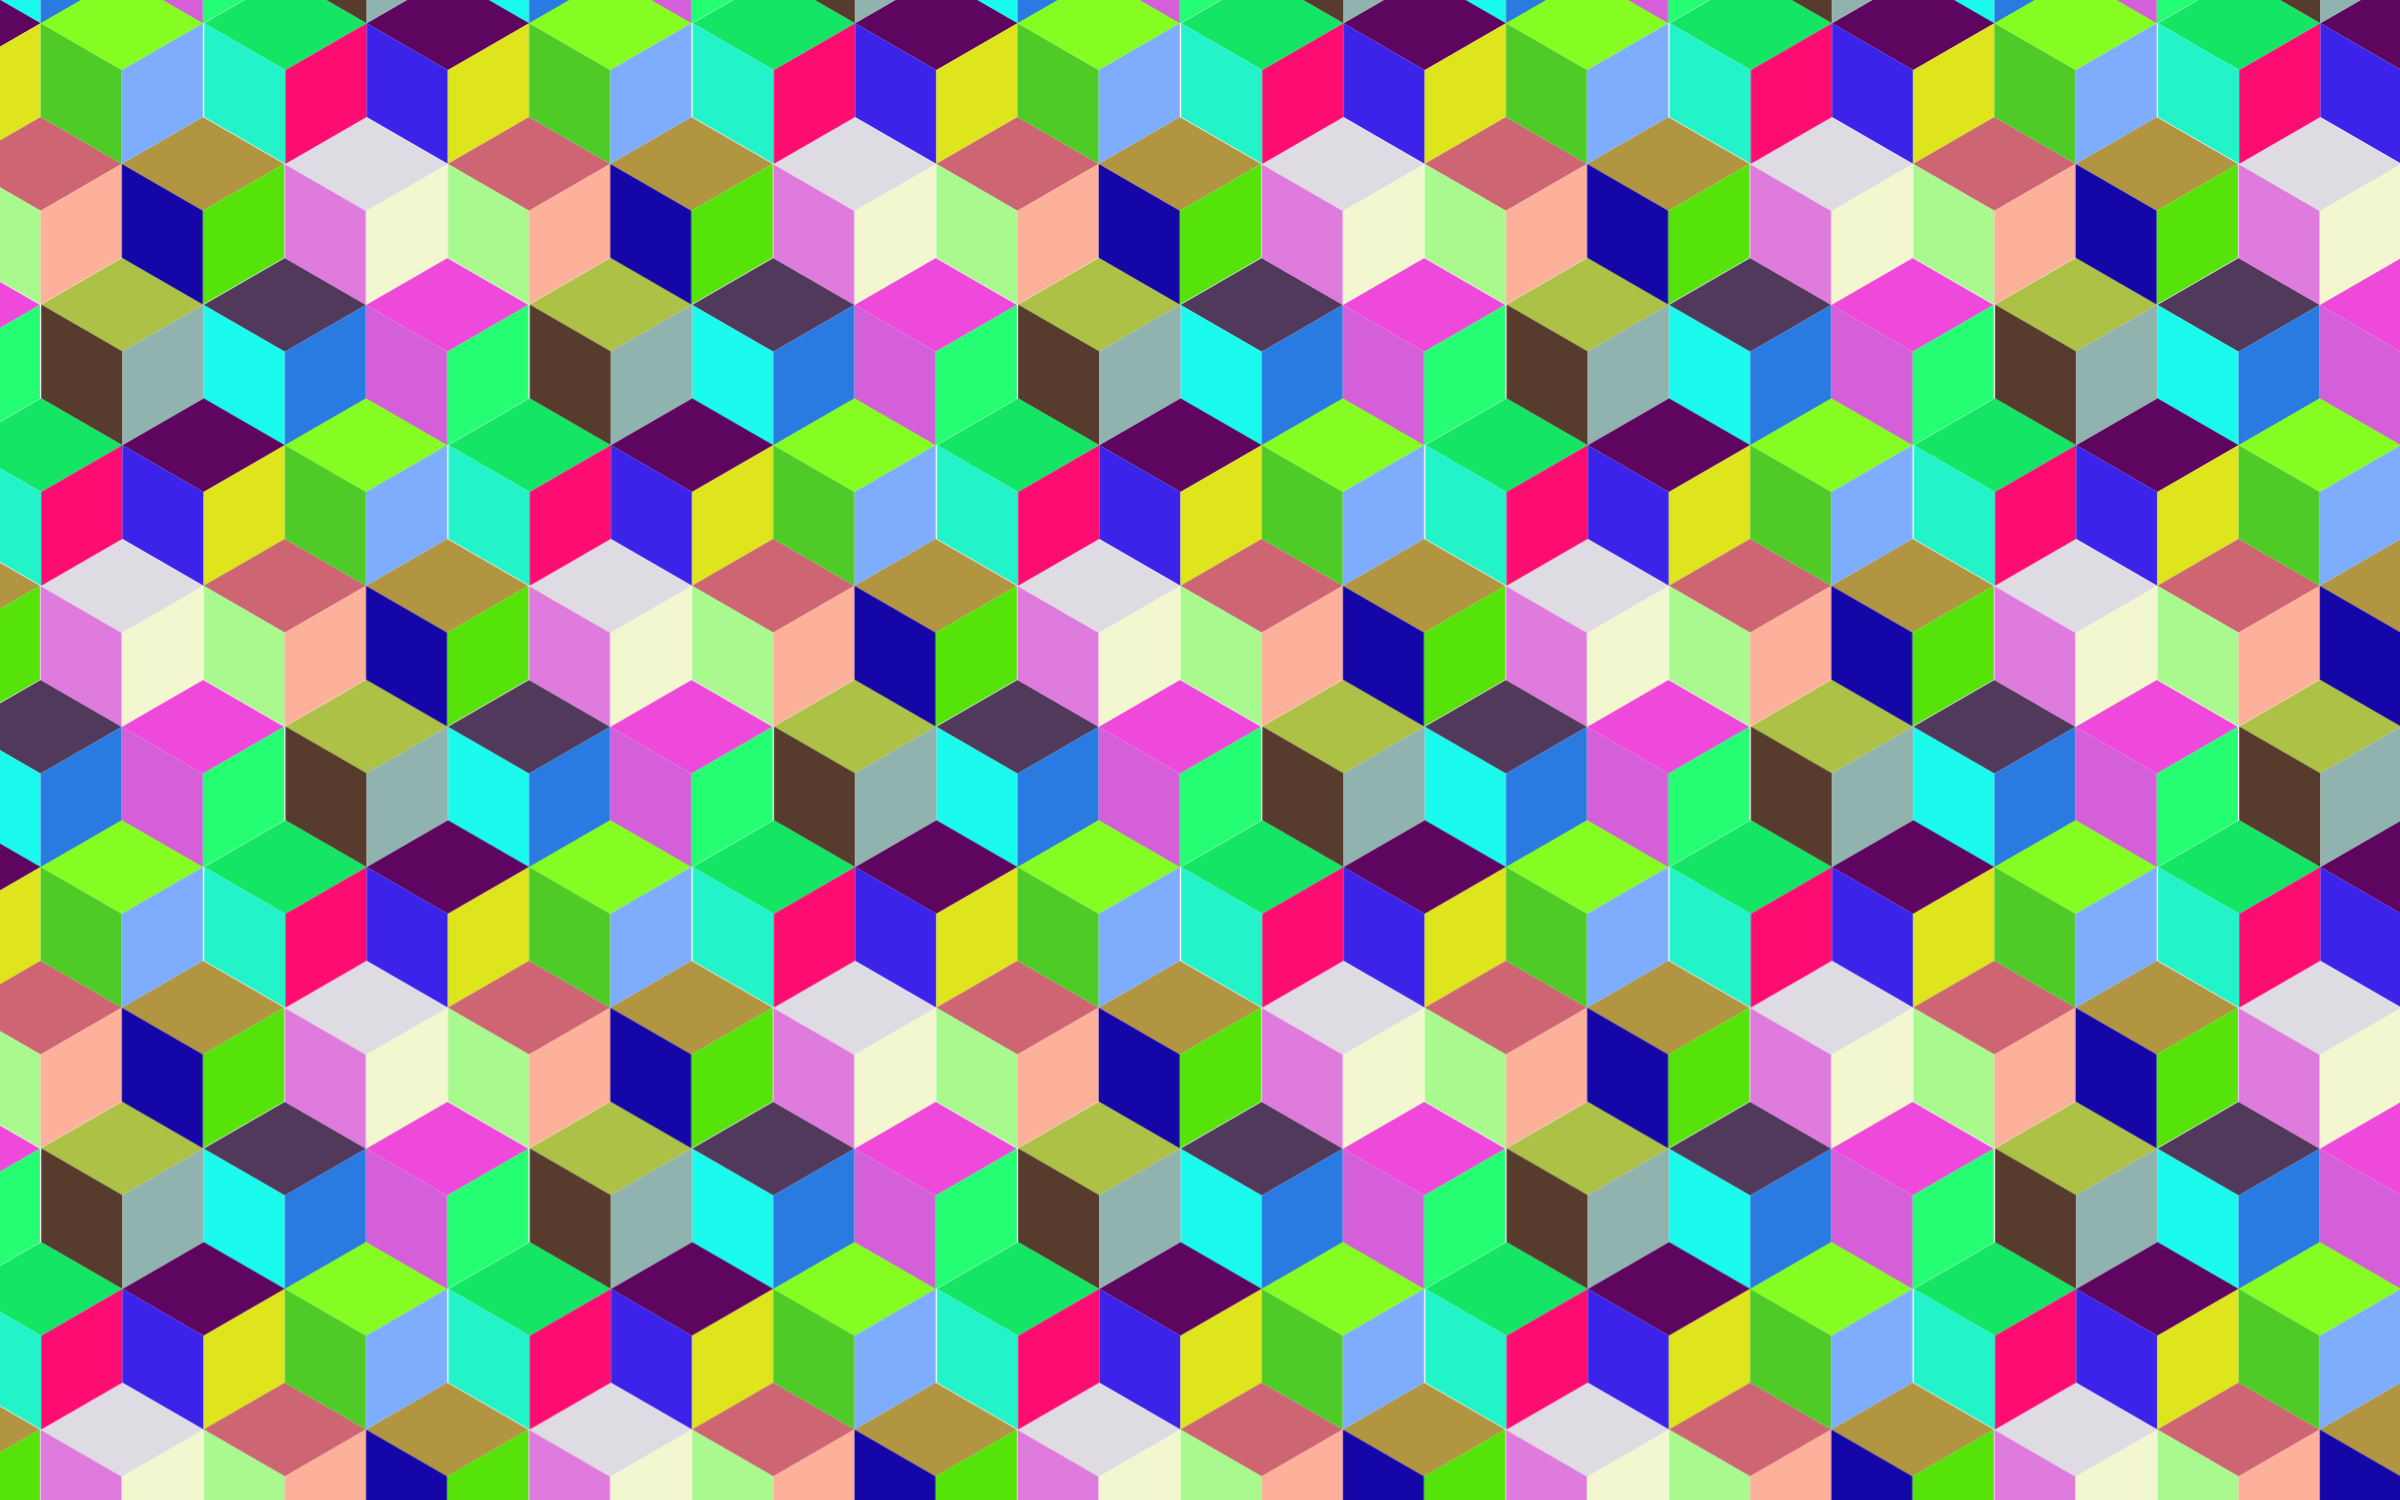 Seamless Prismatic Isometric Cubes Pattern by GDJ